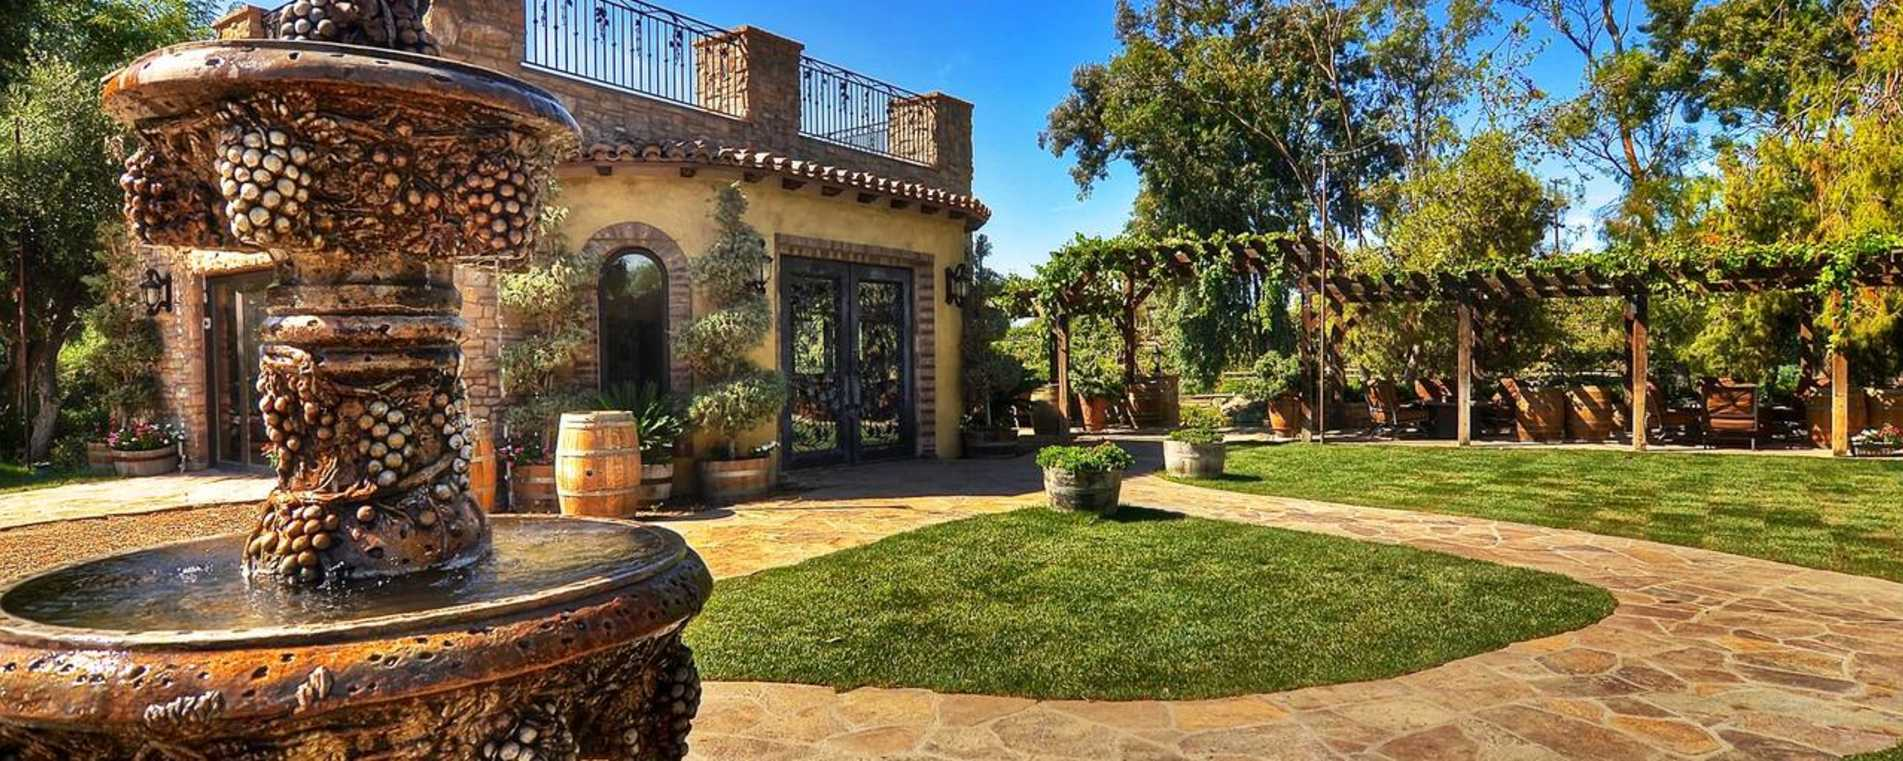 Vitagliano Vineyards & Winery - Temecula